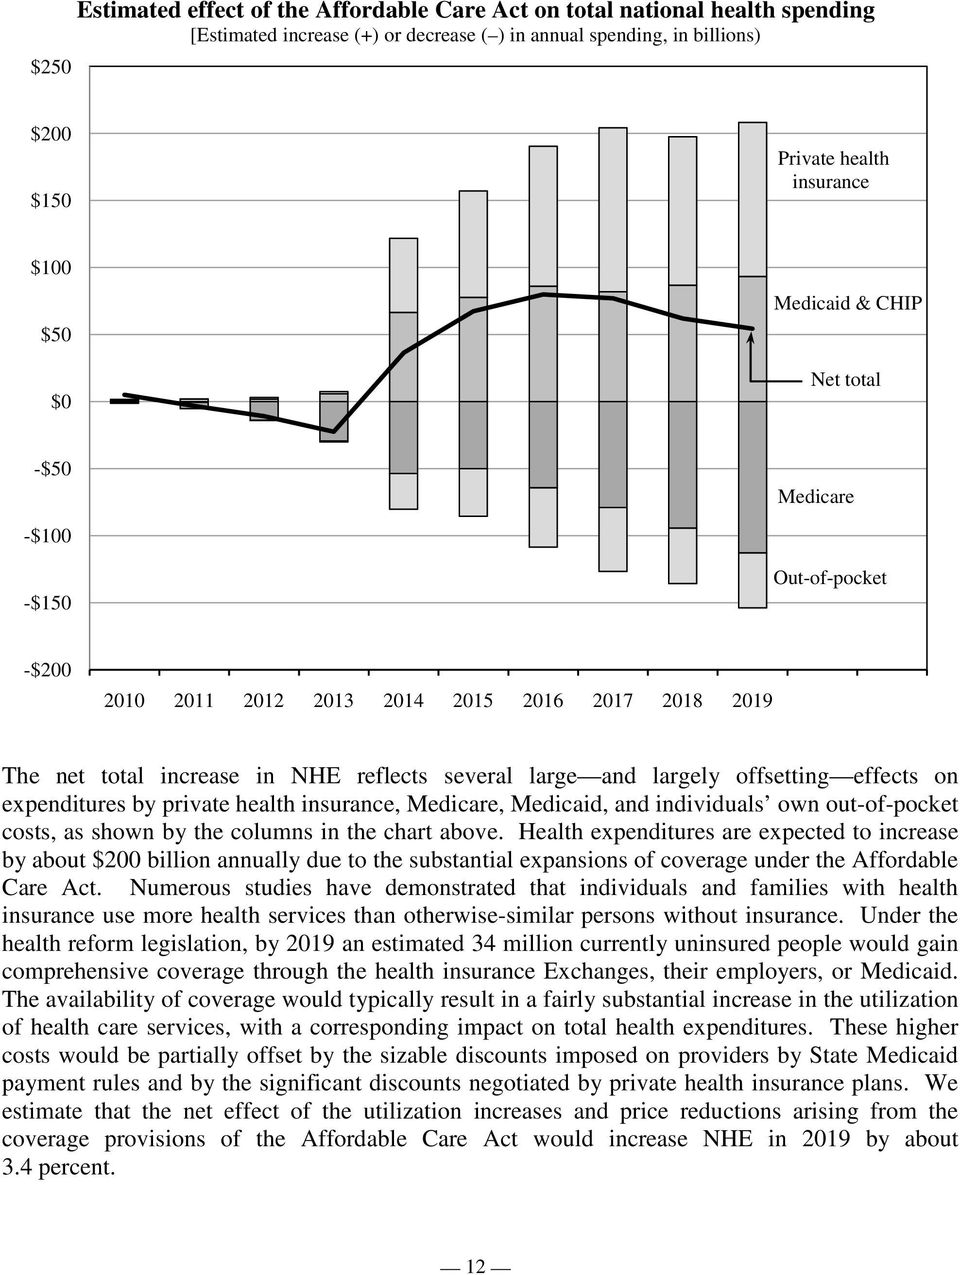 offsetting effects on expenditures by private health insurance, Medicare, Medicaid, and individuals own out-of-pocket costs, as shown by the columns in the chart above.